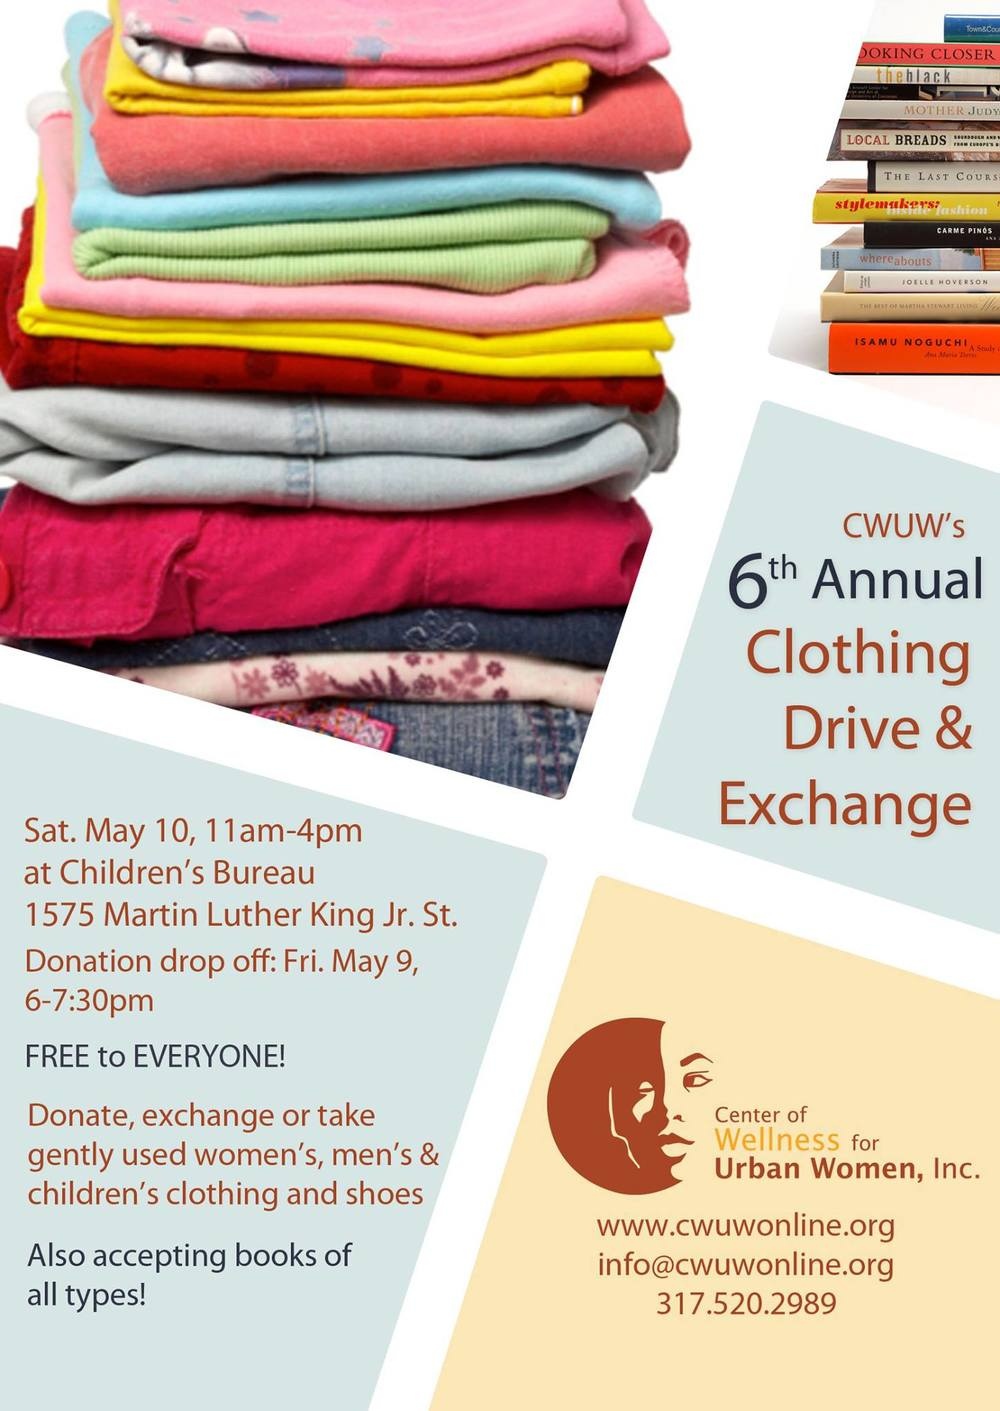 clothingdrive2014.jpg